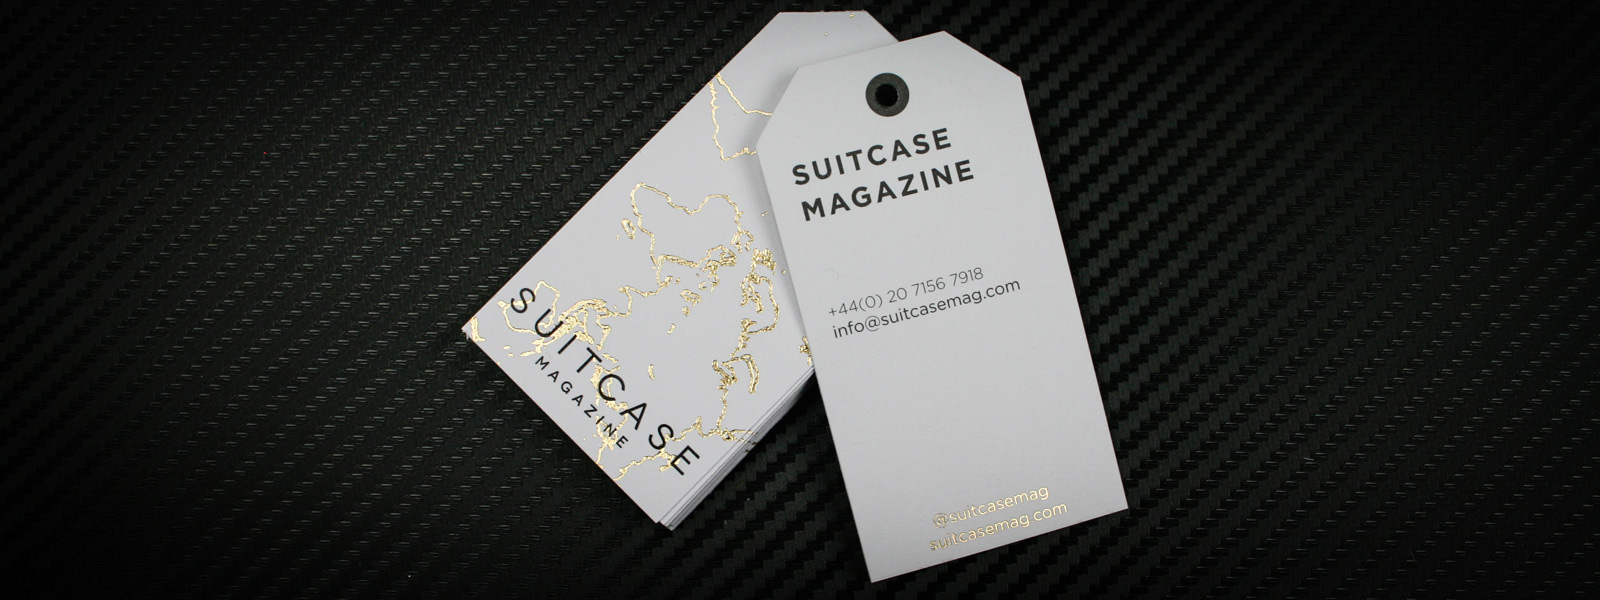 Foil Printed Bespoke Business Cards for Suitcase Magazine